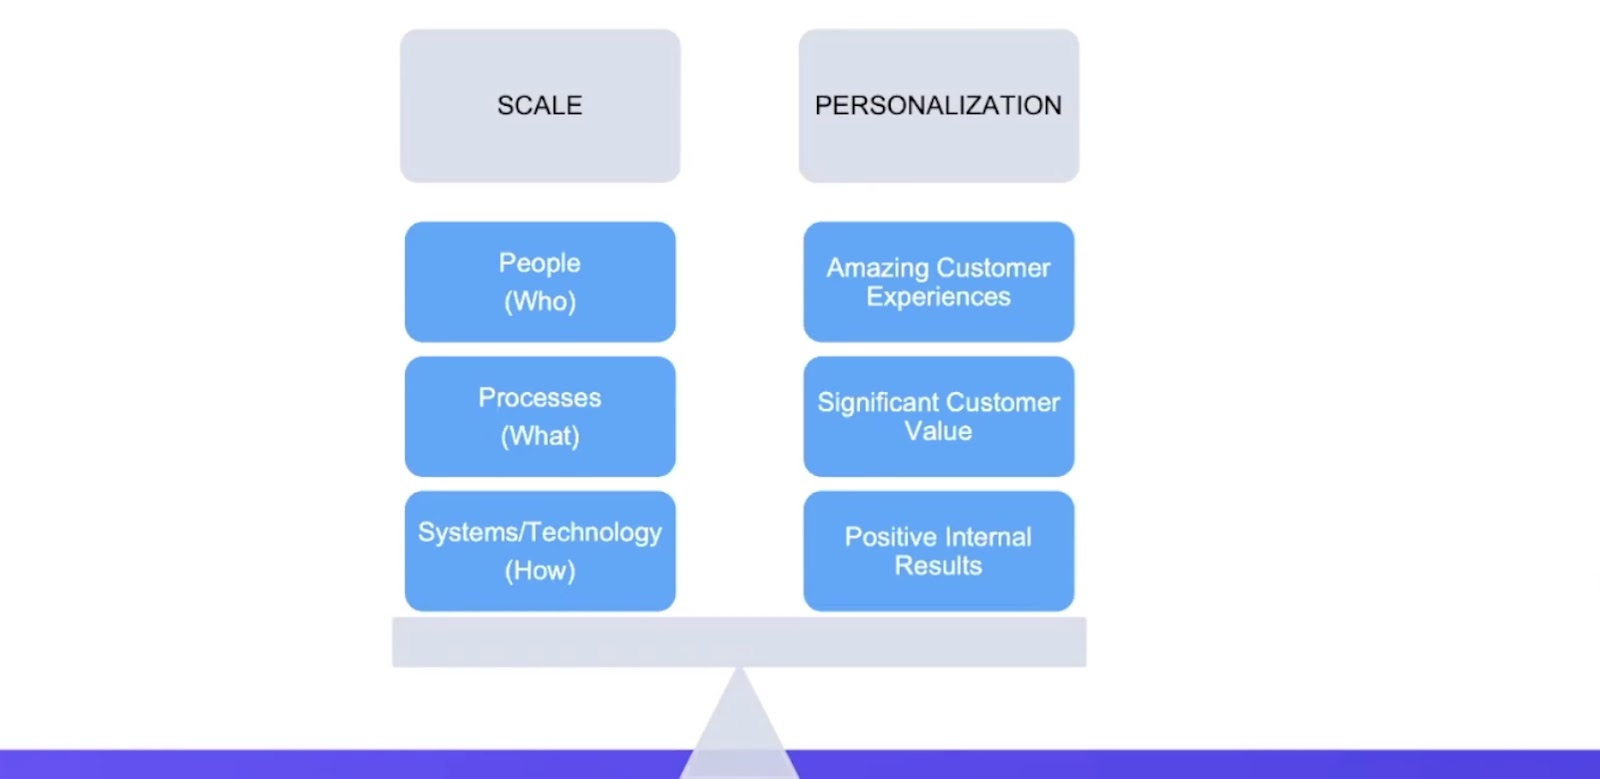 Scale and personalization